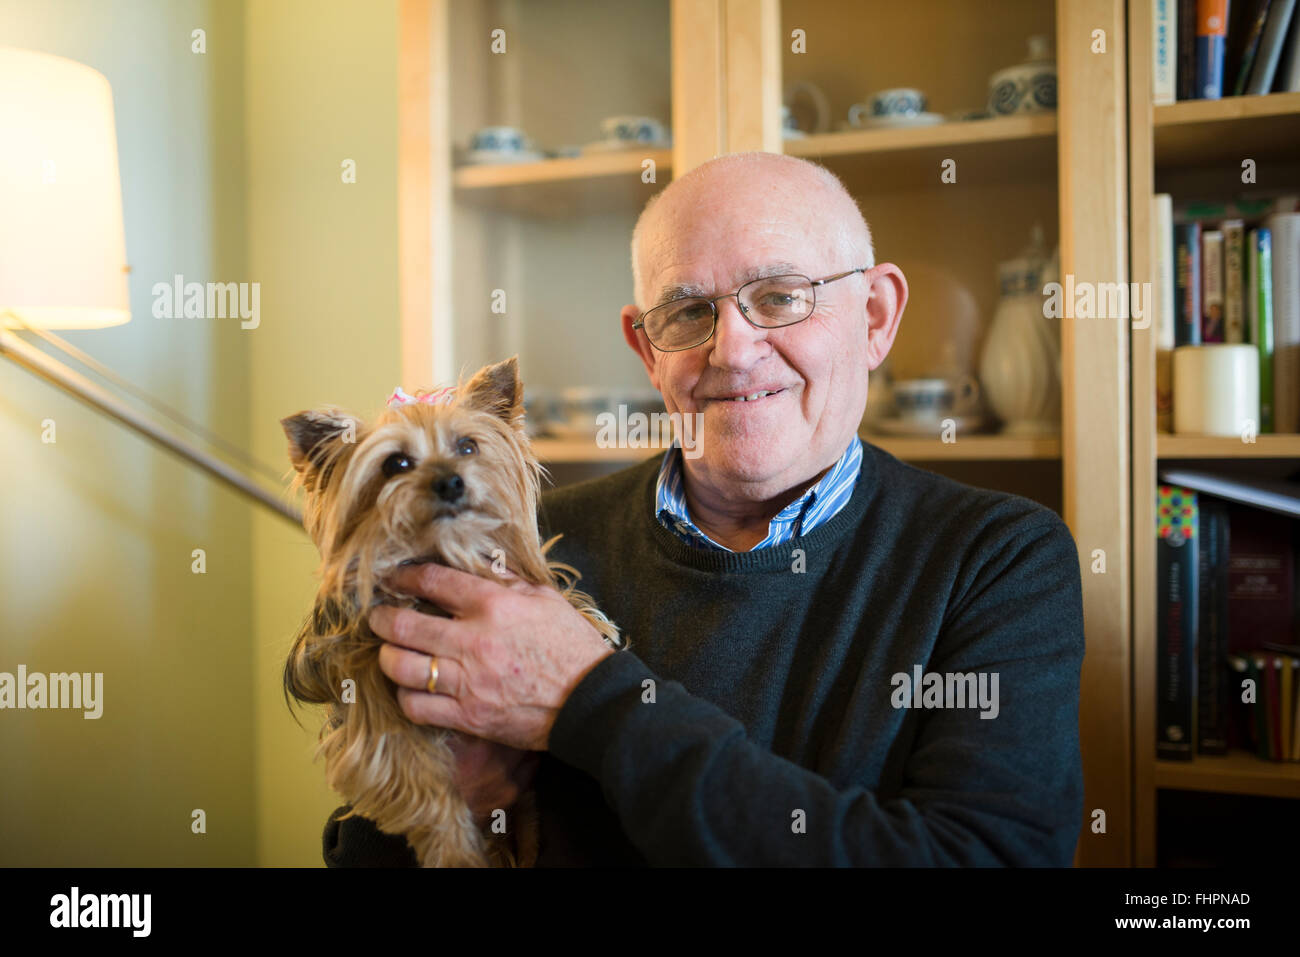 Portrait of senior man with his Yorkshire terrier at home Stock Photo